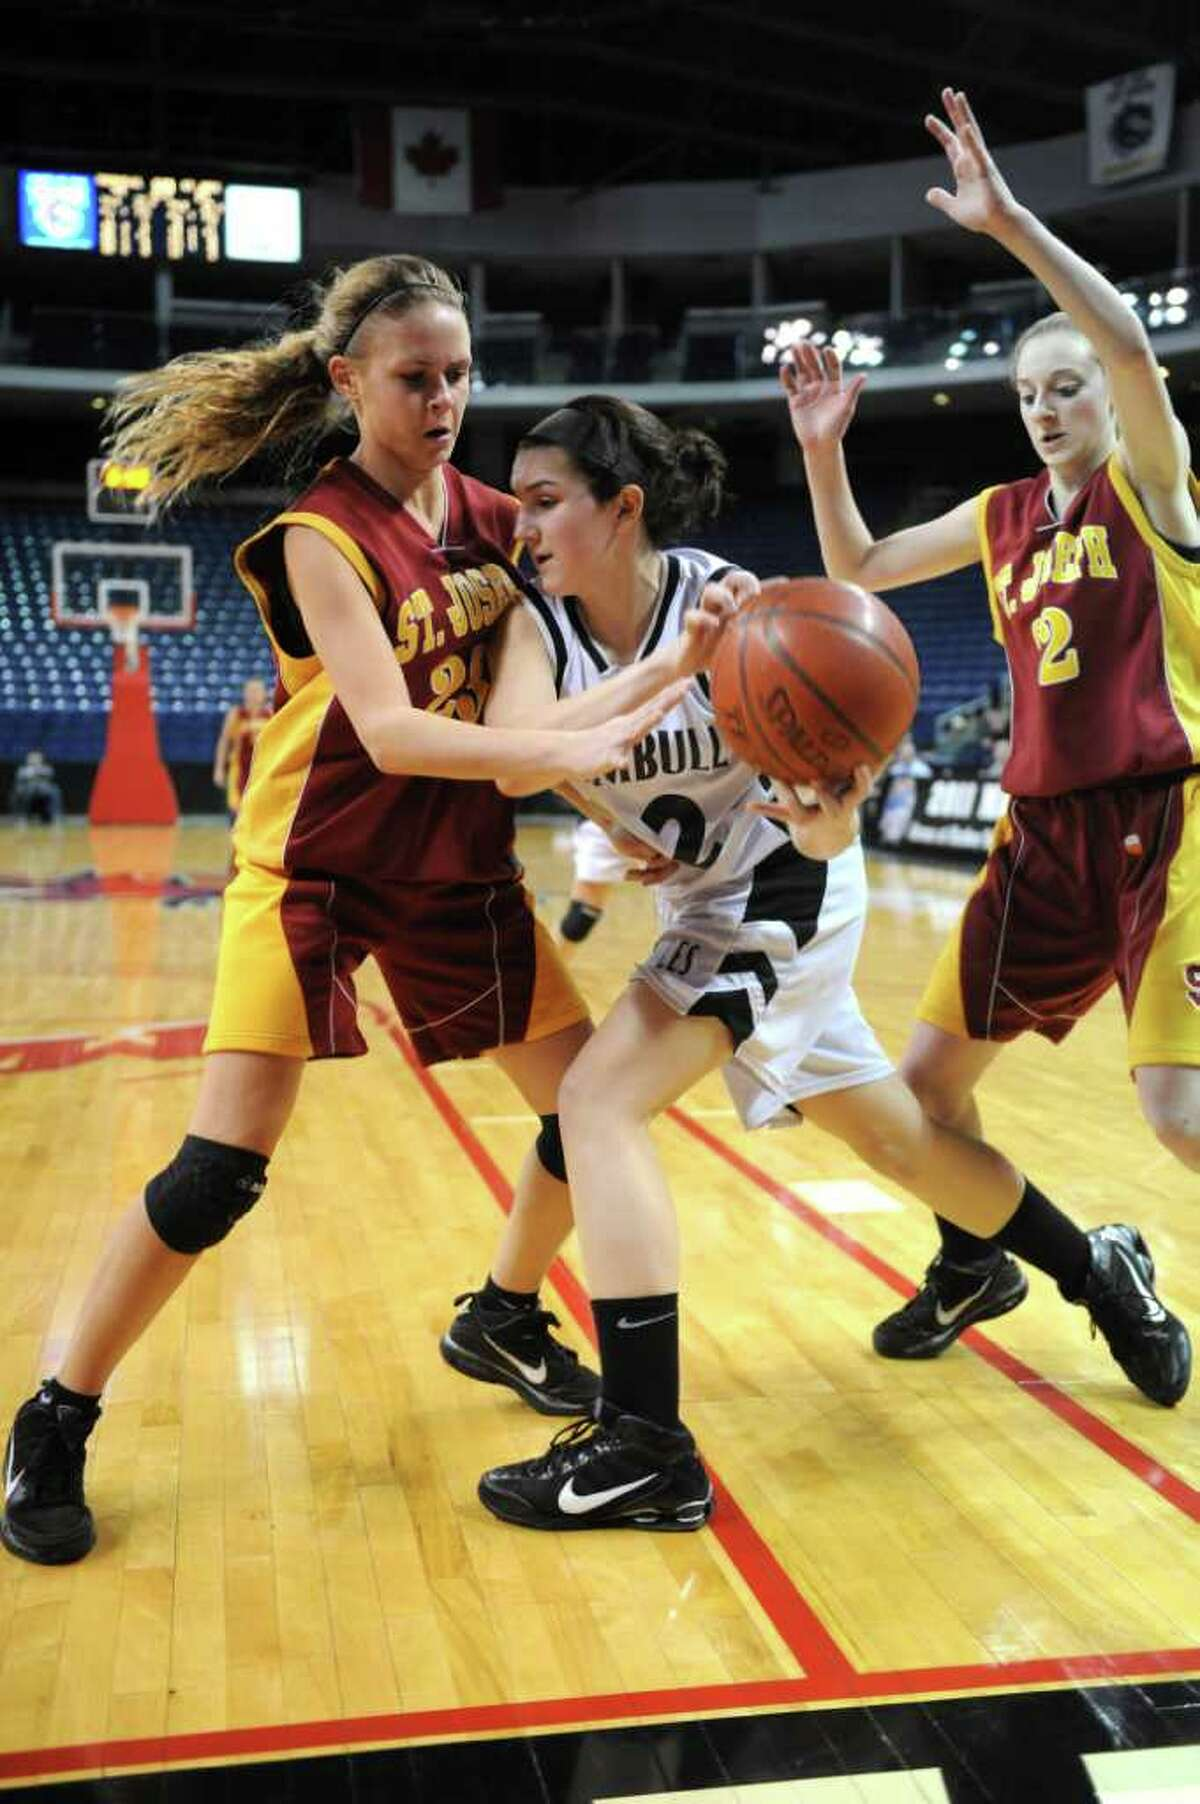 Trumbull's Kelly Coughlin, center, tries to hold onto the ball as she is surrounded by St. Joseph's Taylor Whiting, left, and Nancy Stablein, right, during Tuesday's FCIAC girls basketball semifinal game at the Webster Bank Arena at Harbor Yard on Feburary 22, 2011.